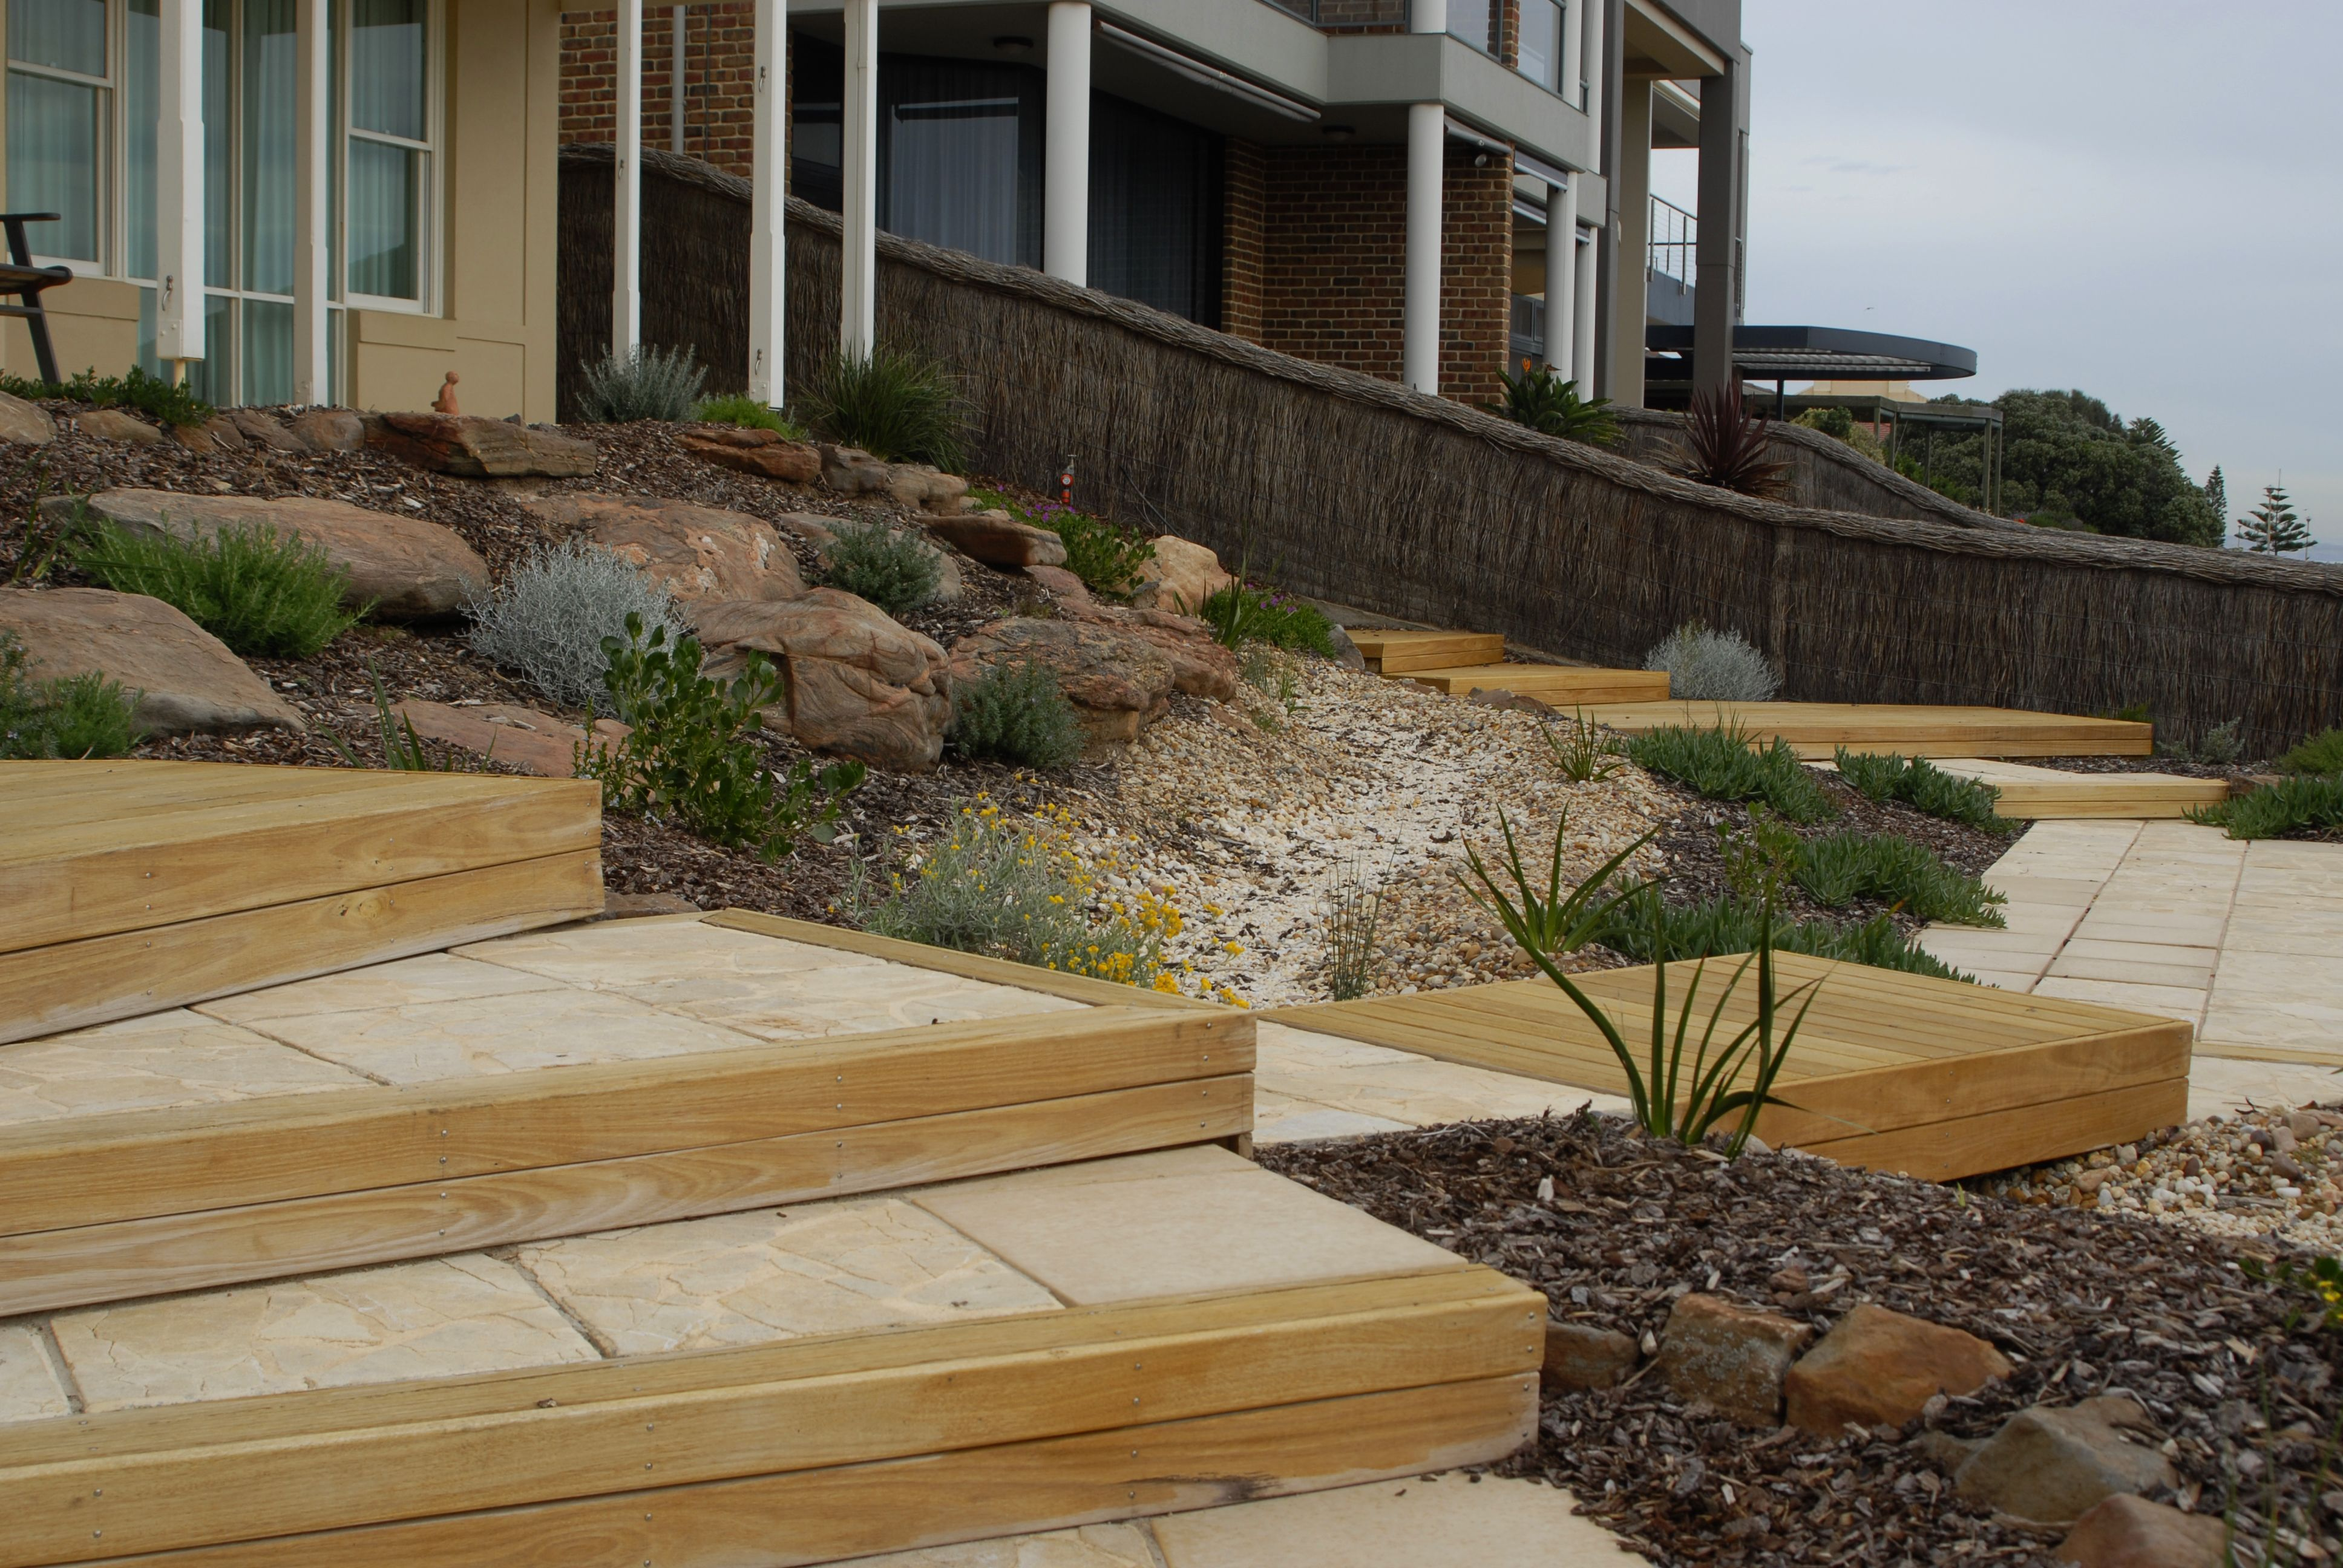 Angled decks and steps allow for access to the beach ...